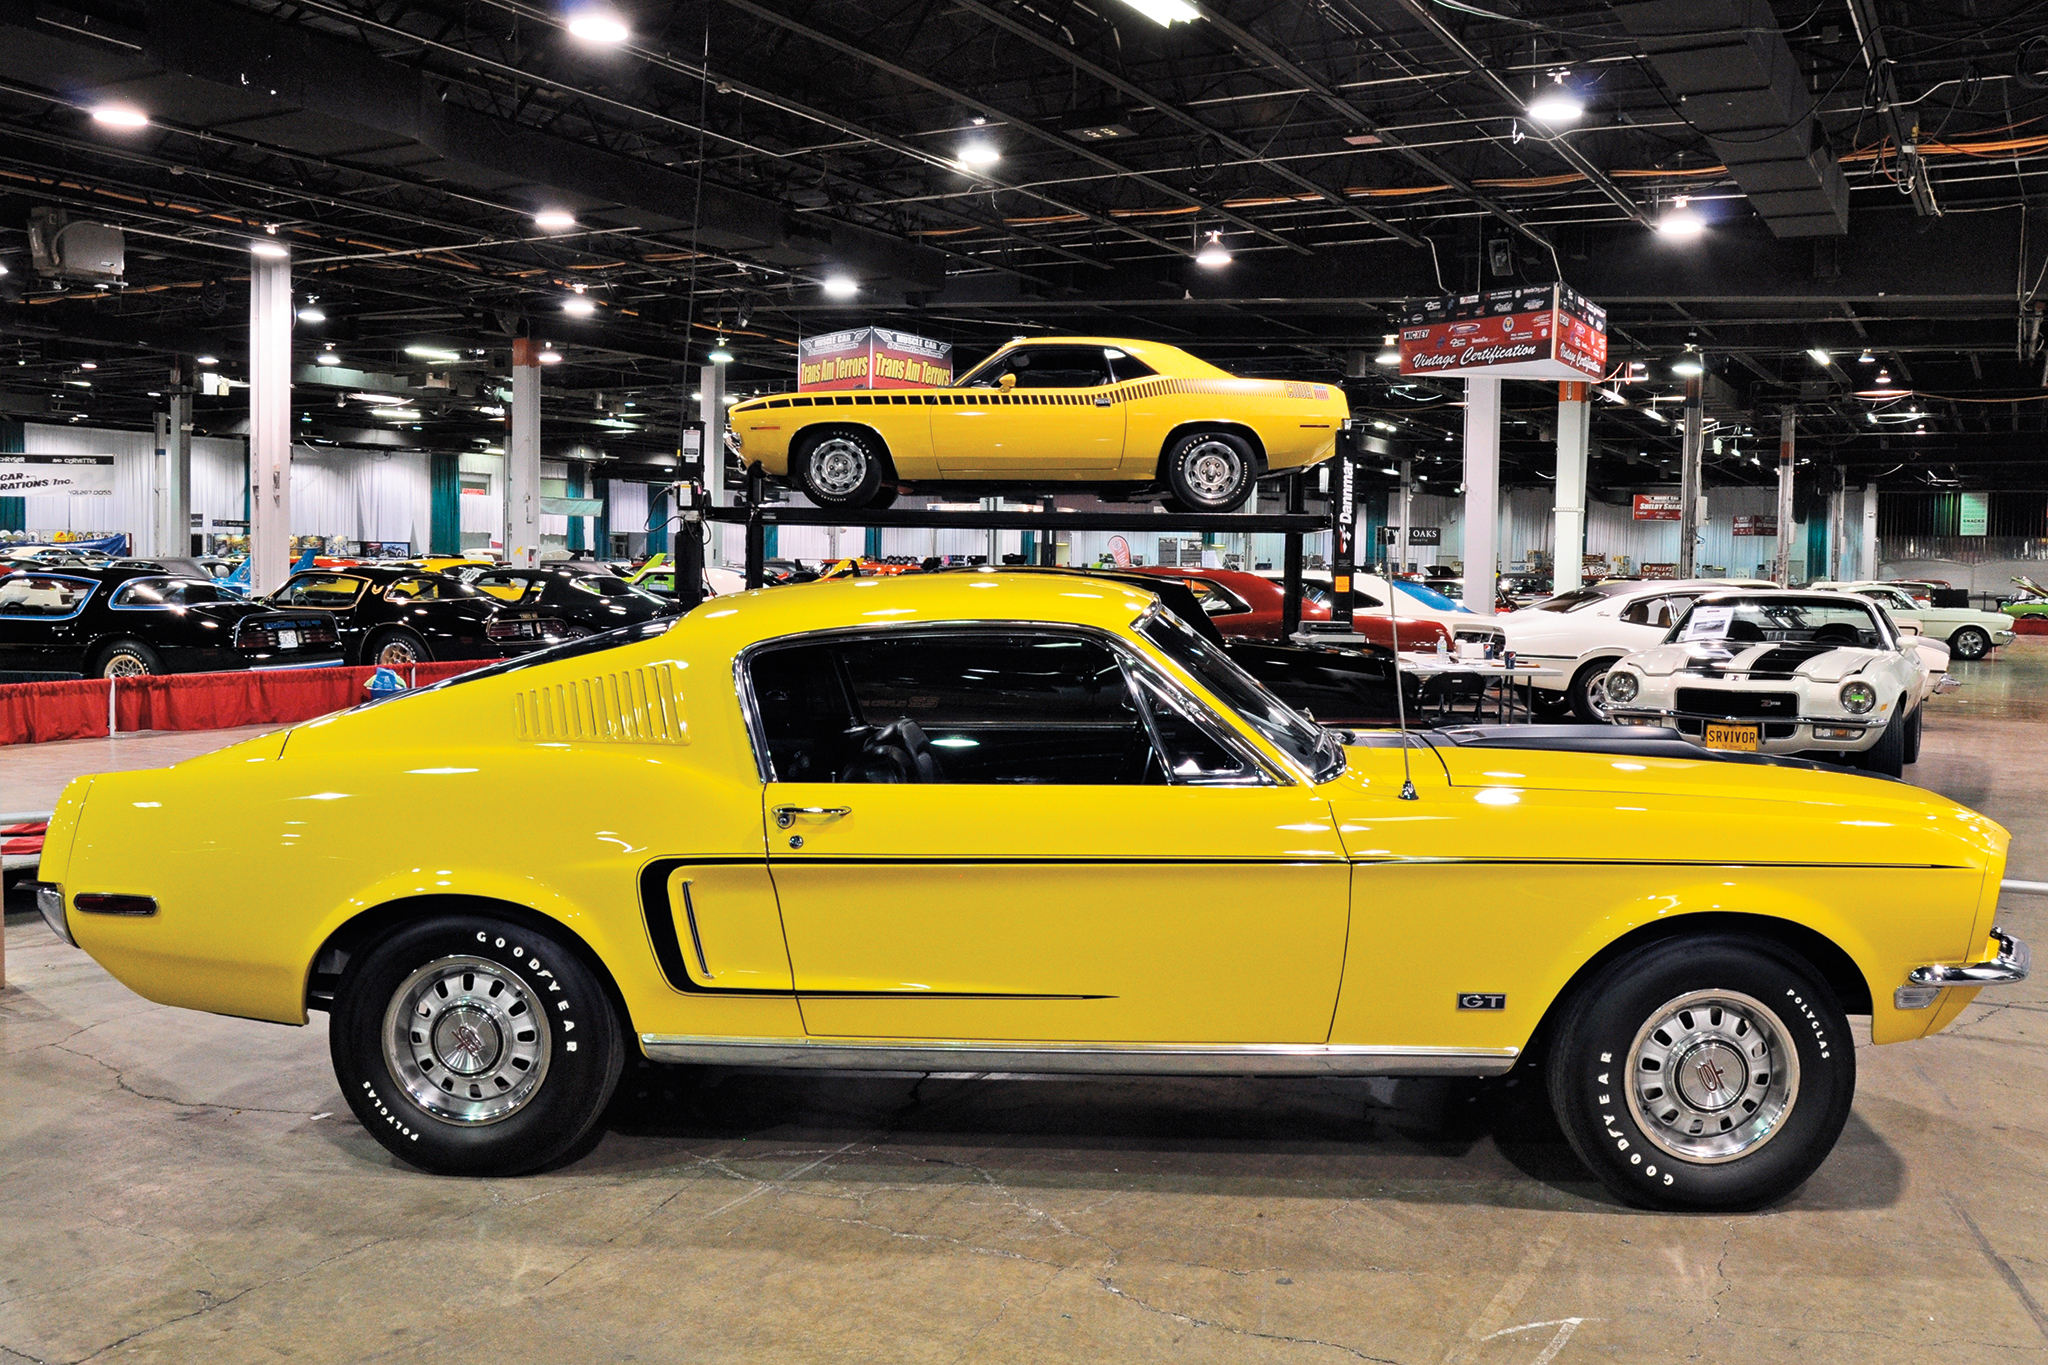 This '68½ 428 Cobra Jet Mustang is one of 171 built in the San Jose plant, and the only Special Paint Cobra Jet with 4.30 gears. Behind the Mustang is the Vintage Certification group of cars, where authenticity is judged and evaluated for participants.